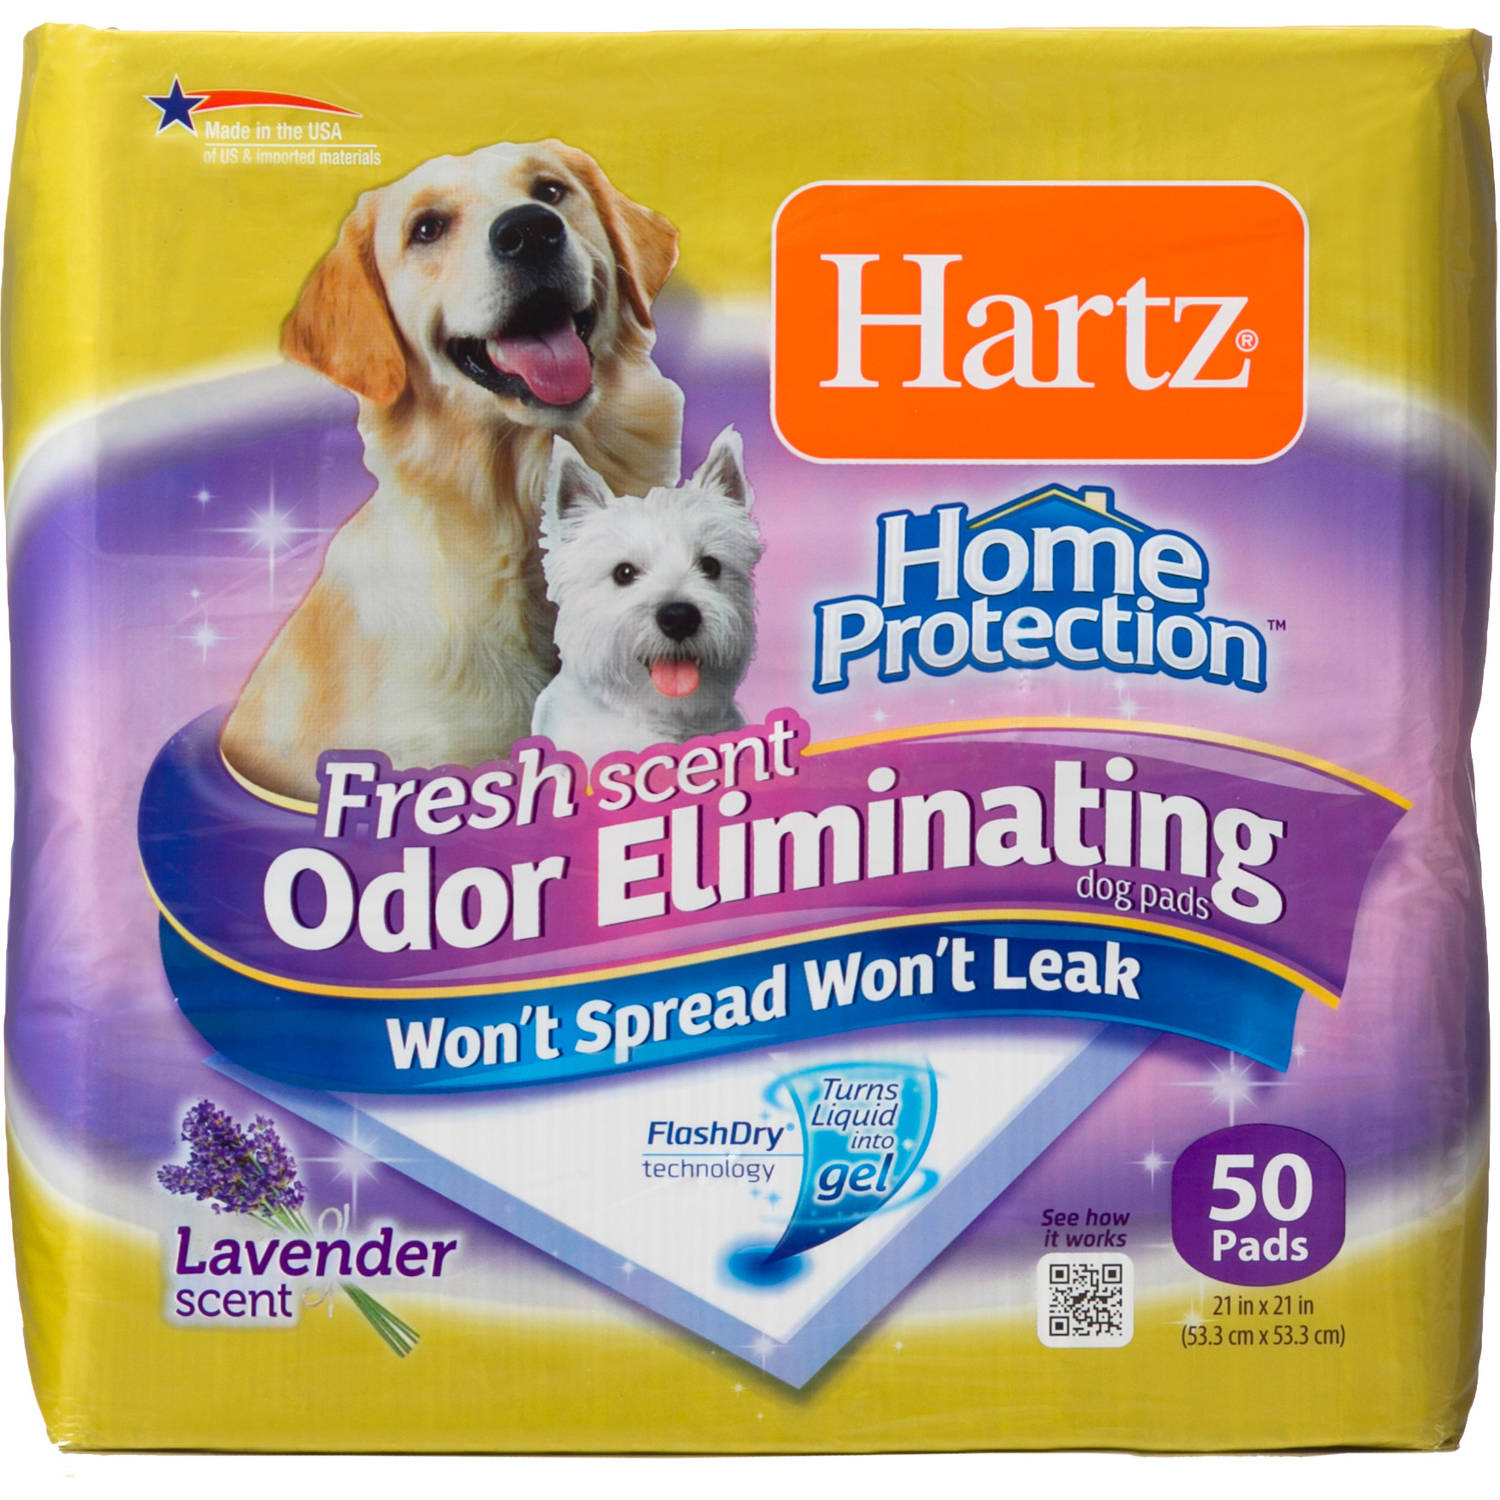 Hartz Home Protection Odor-Eliminating Dog Pads, 50ct